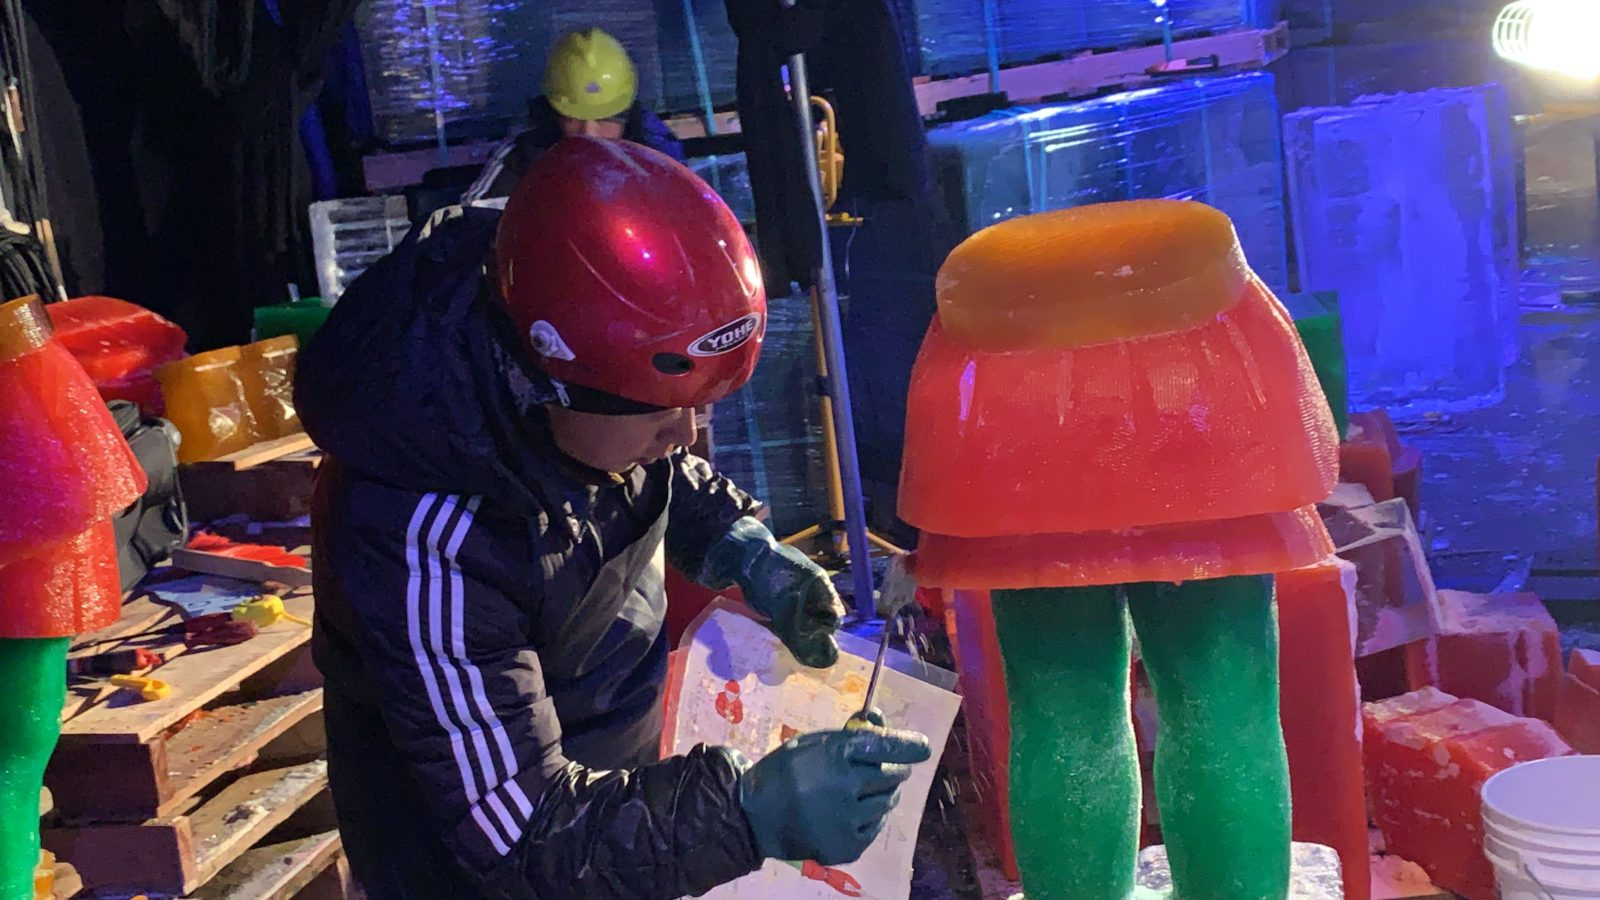 Welcoming ice artisans to Gaylord Palms 2019